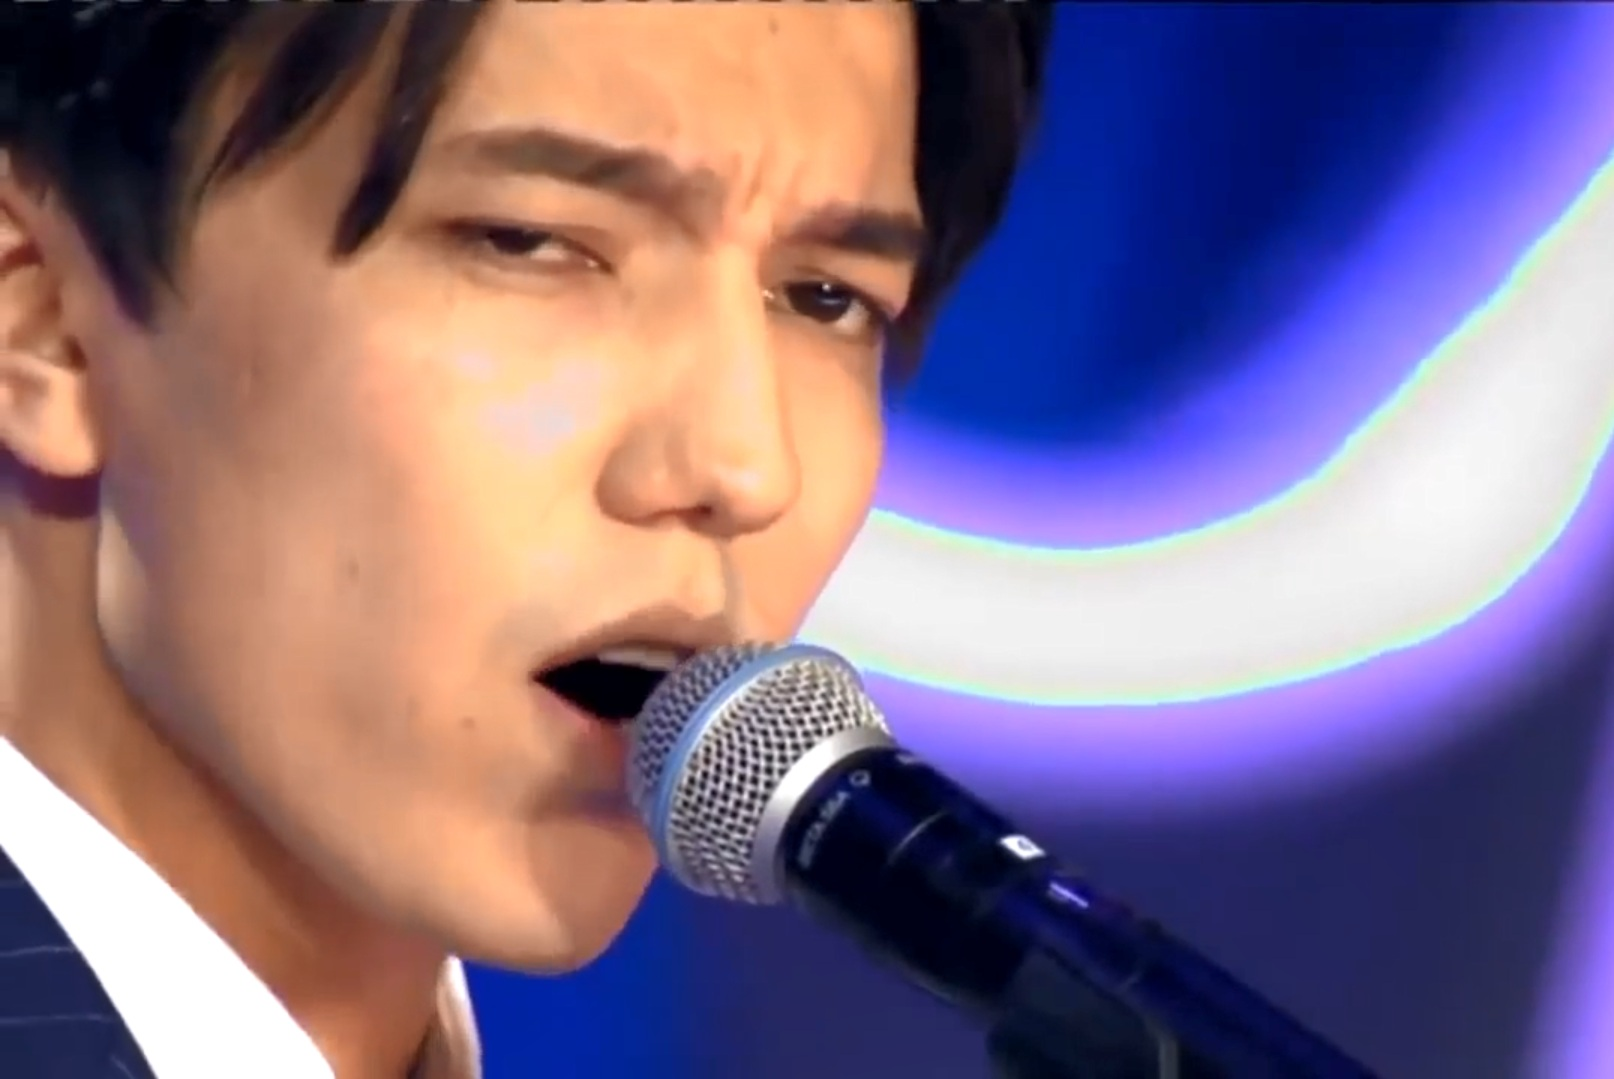 Meet the most popular Kazakh singer in China who stuns the